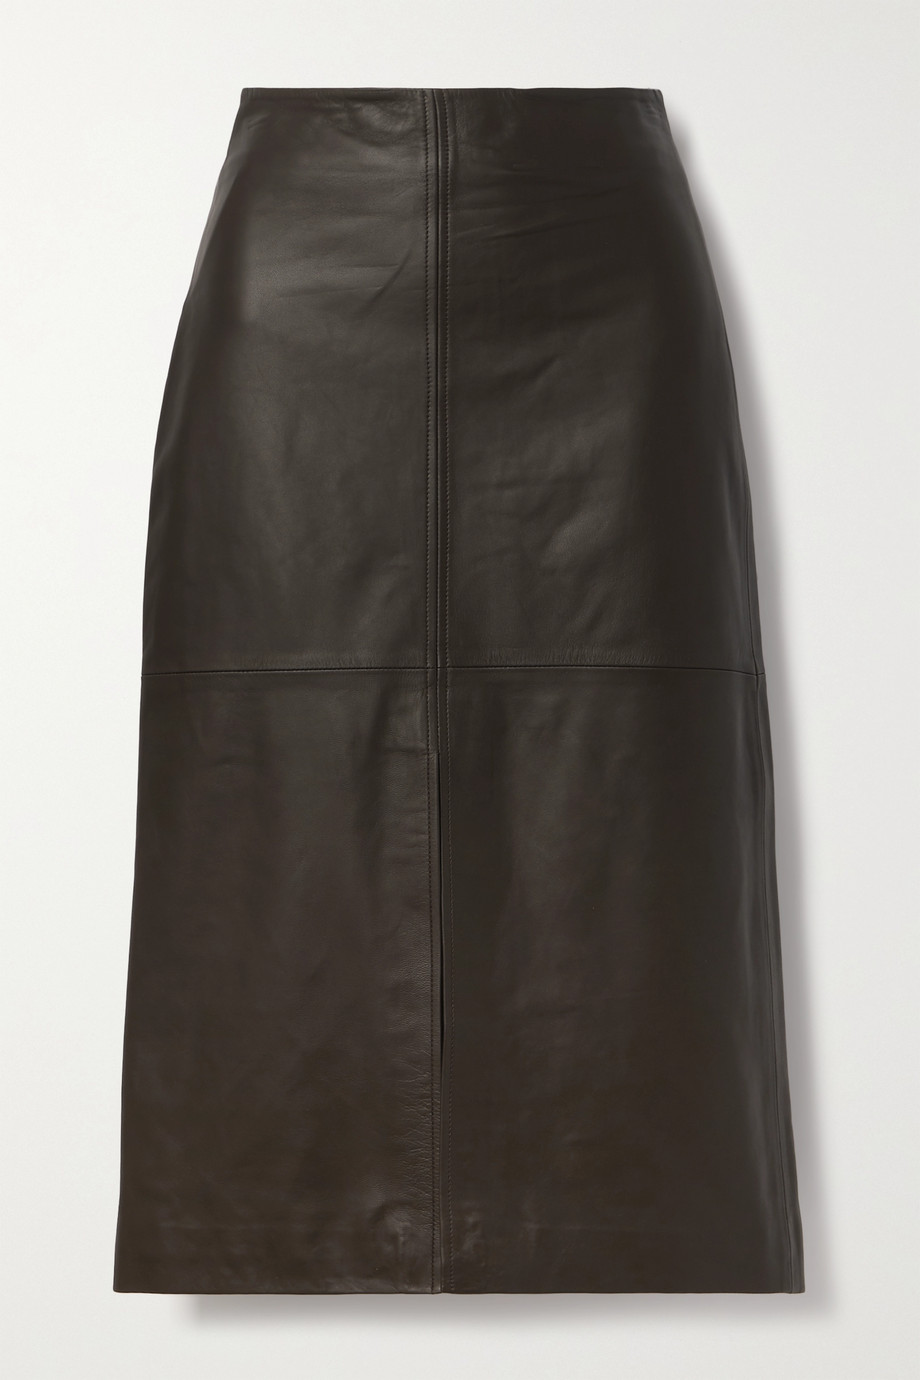 Co Leather midi skirt